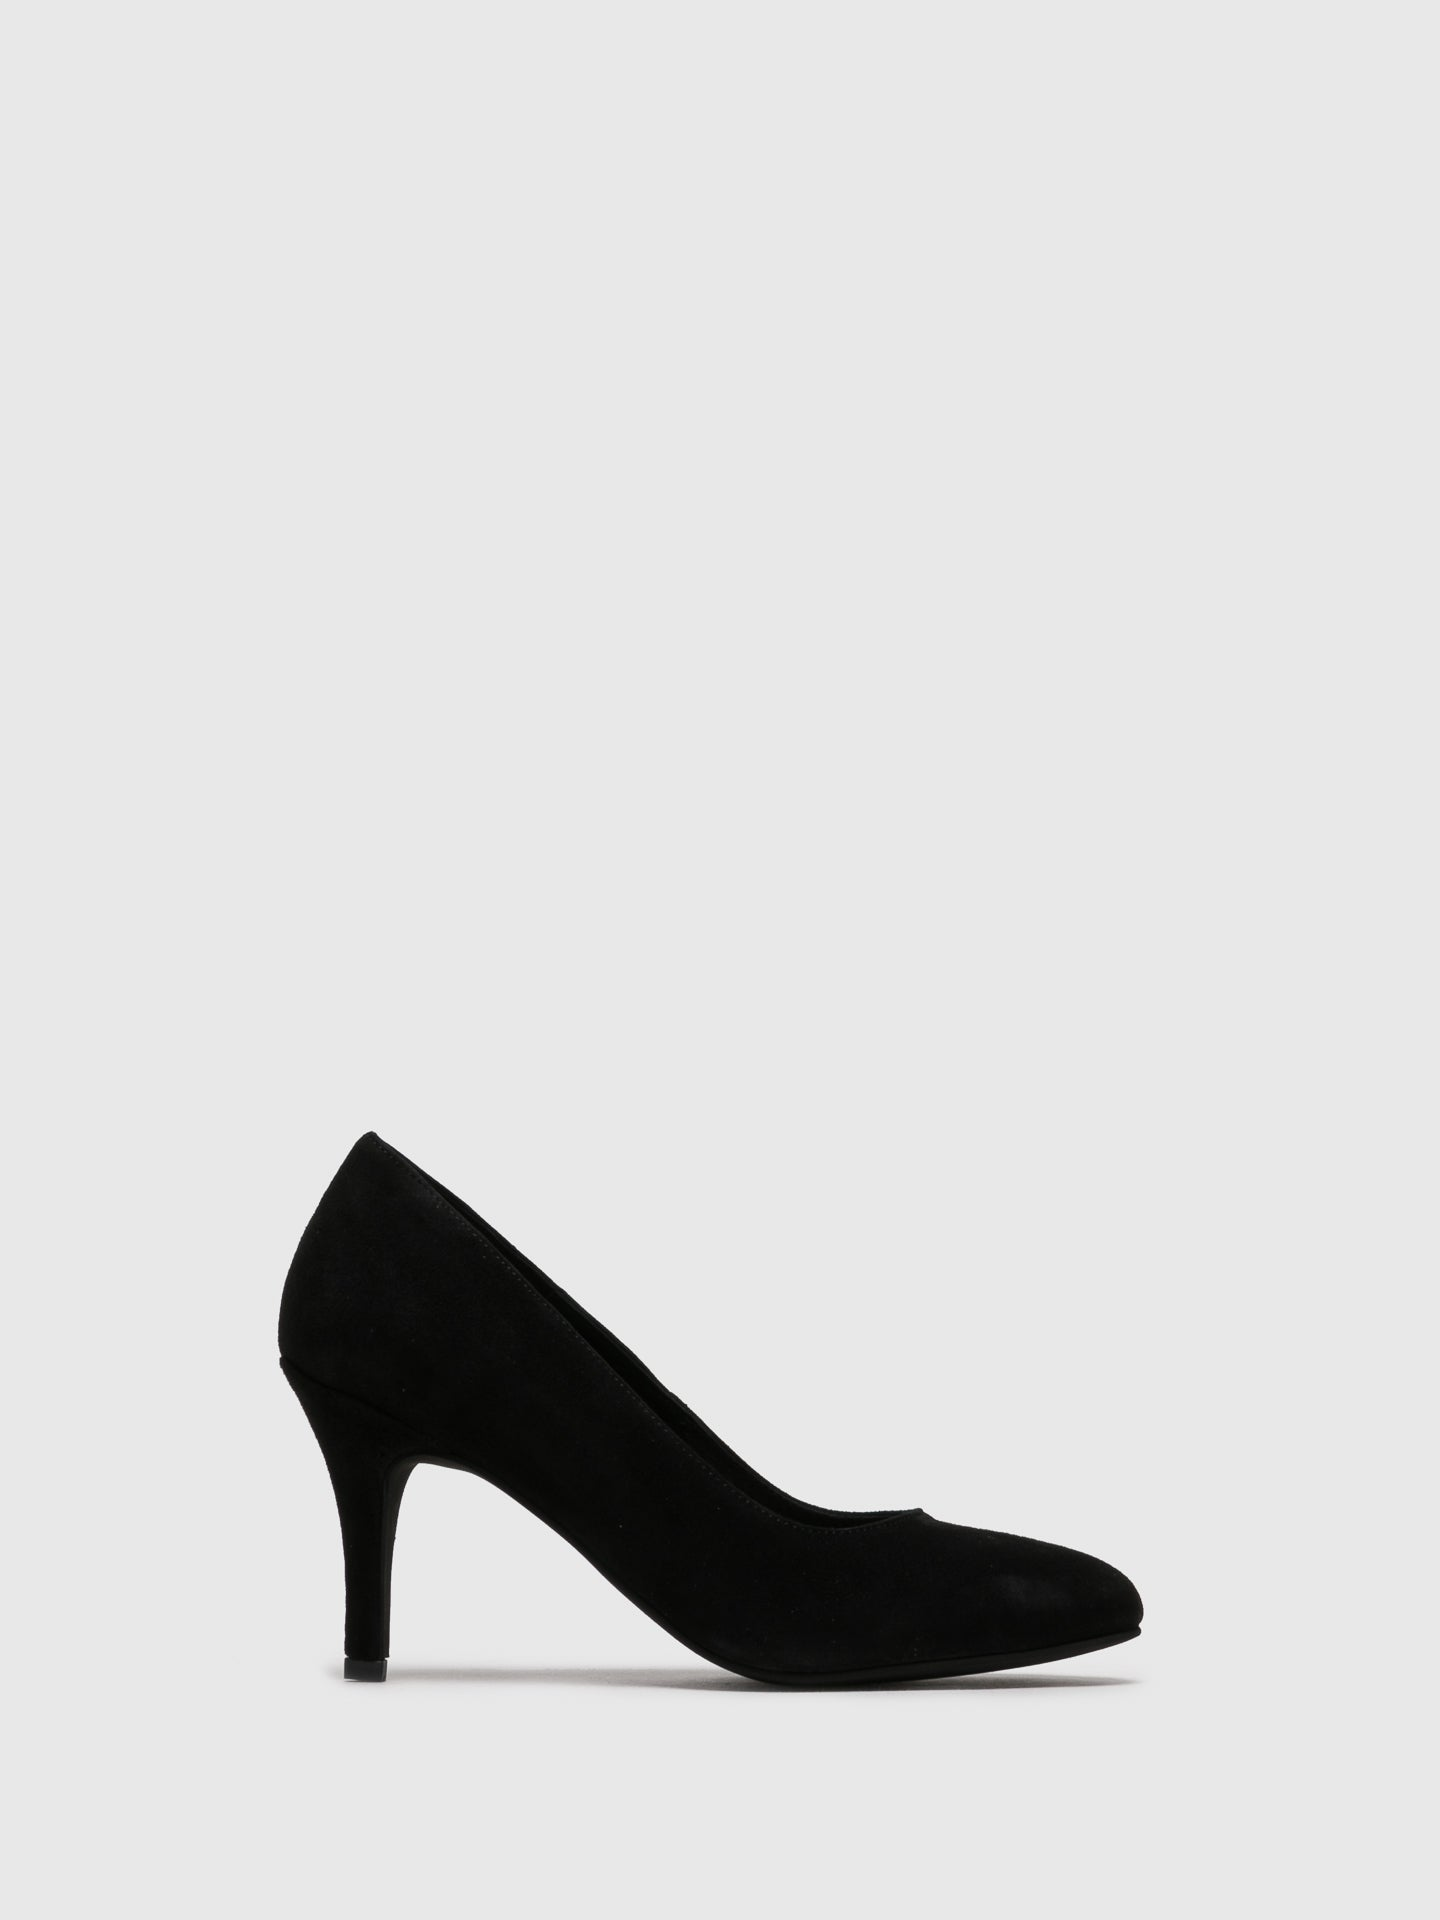 Foreva Black Suede Round Toe Pumps